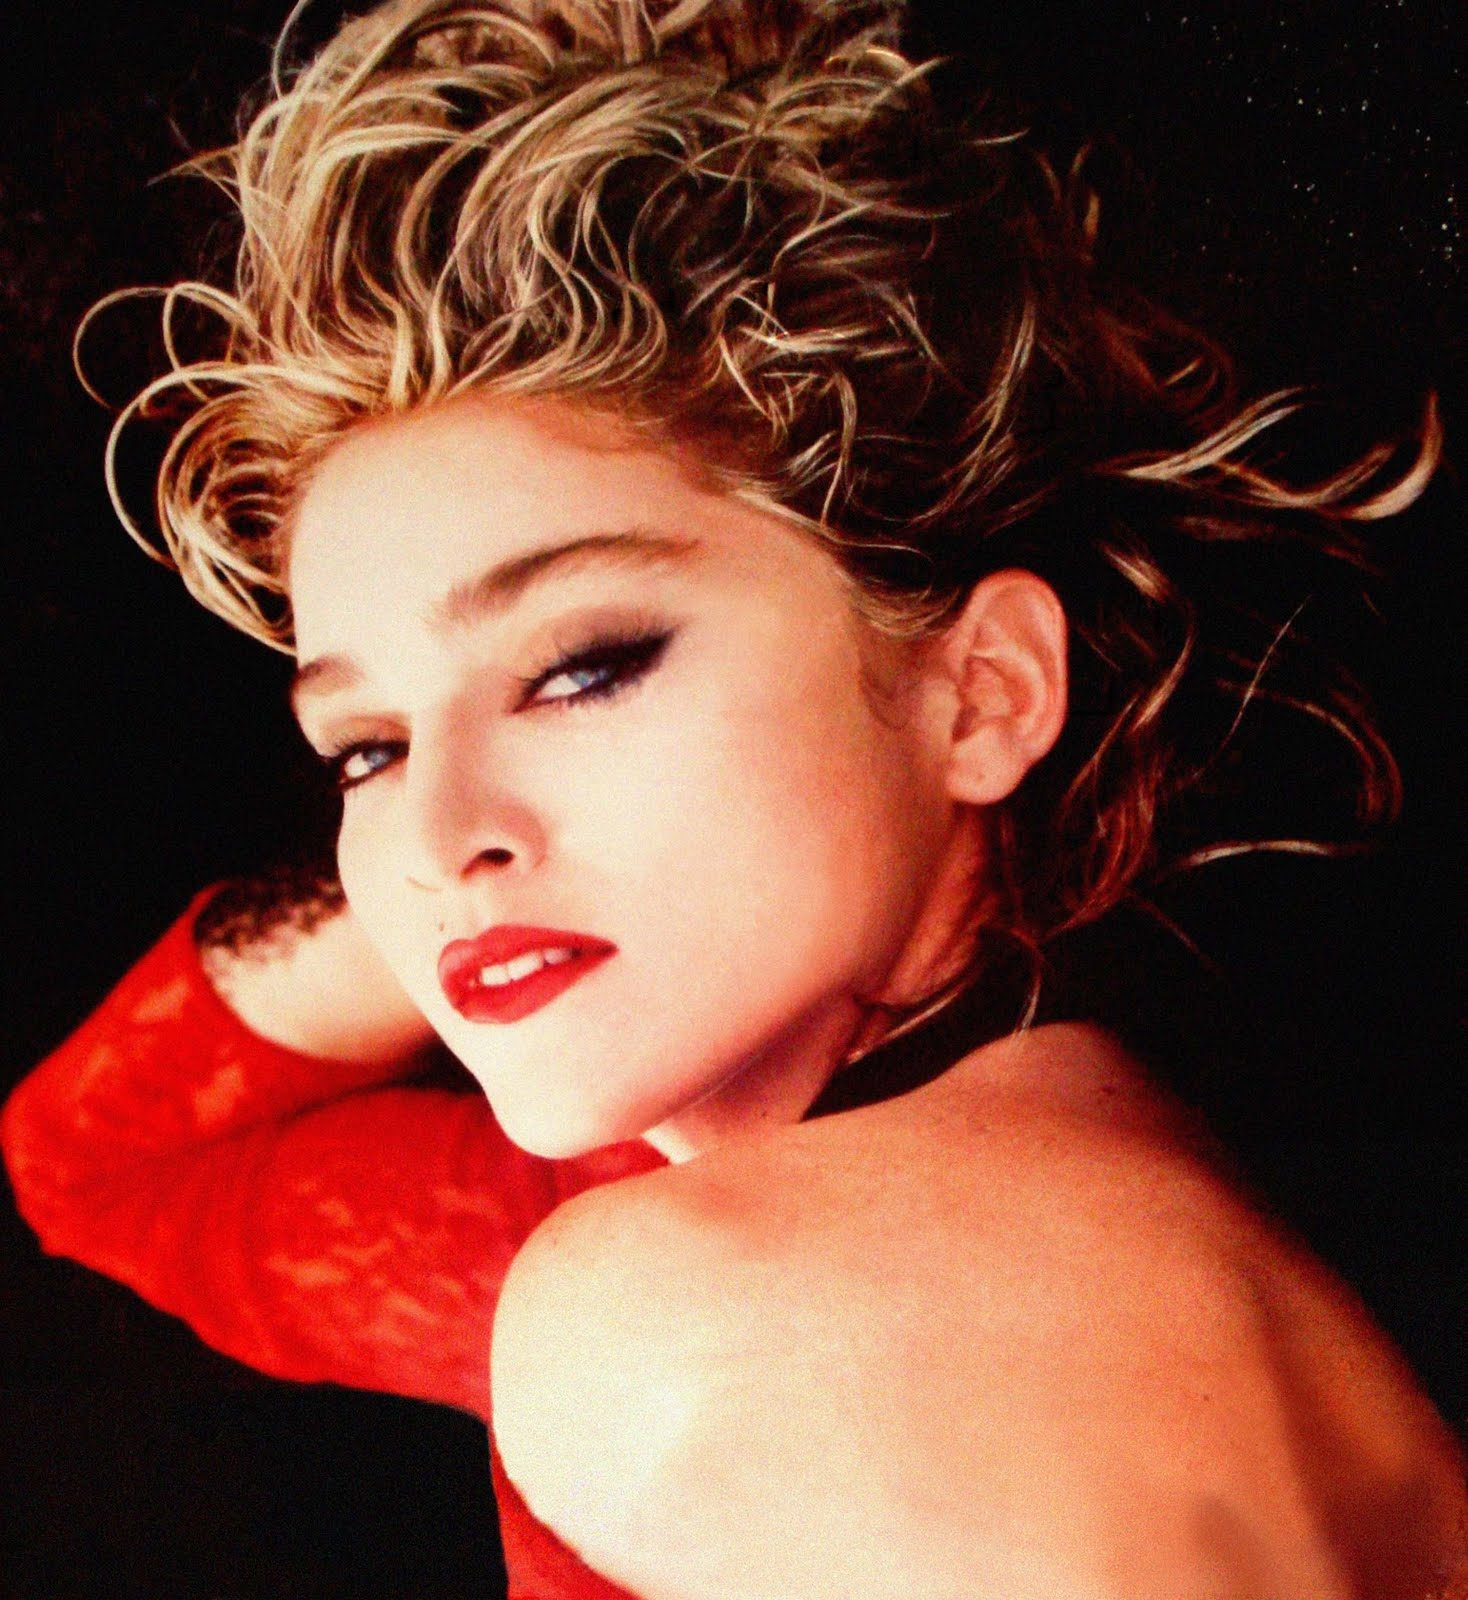 sex madonna The best madonna porn videos are right here at youporncom click here now and see all of the hottest madonna porno movies for free.